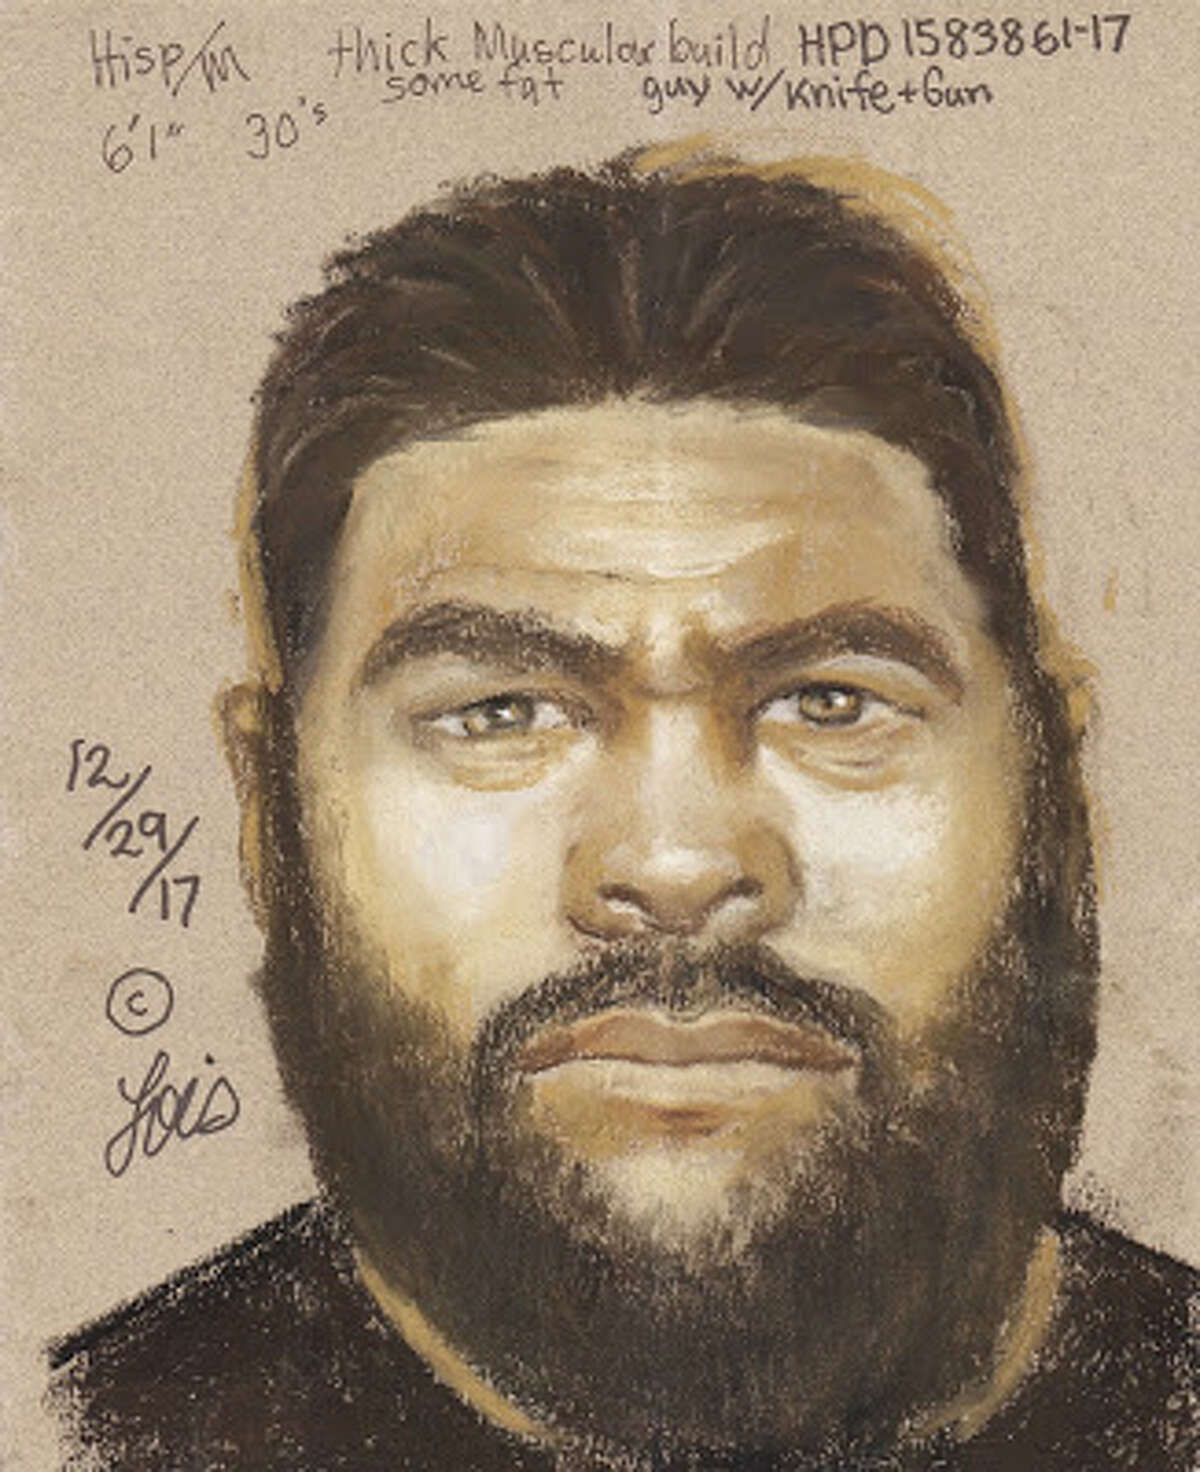 A sketch of one of the men who was involved in a robbery on Dec. 18 outside Whataburger. >> Keep clicking to see some of the weirdest and sketchiest police sketches ever...